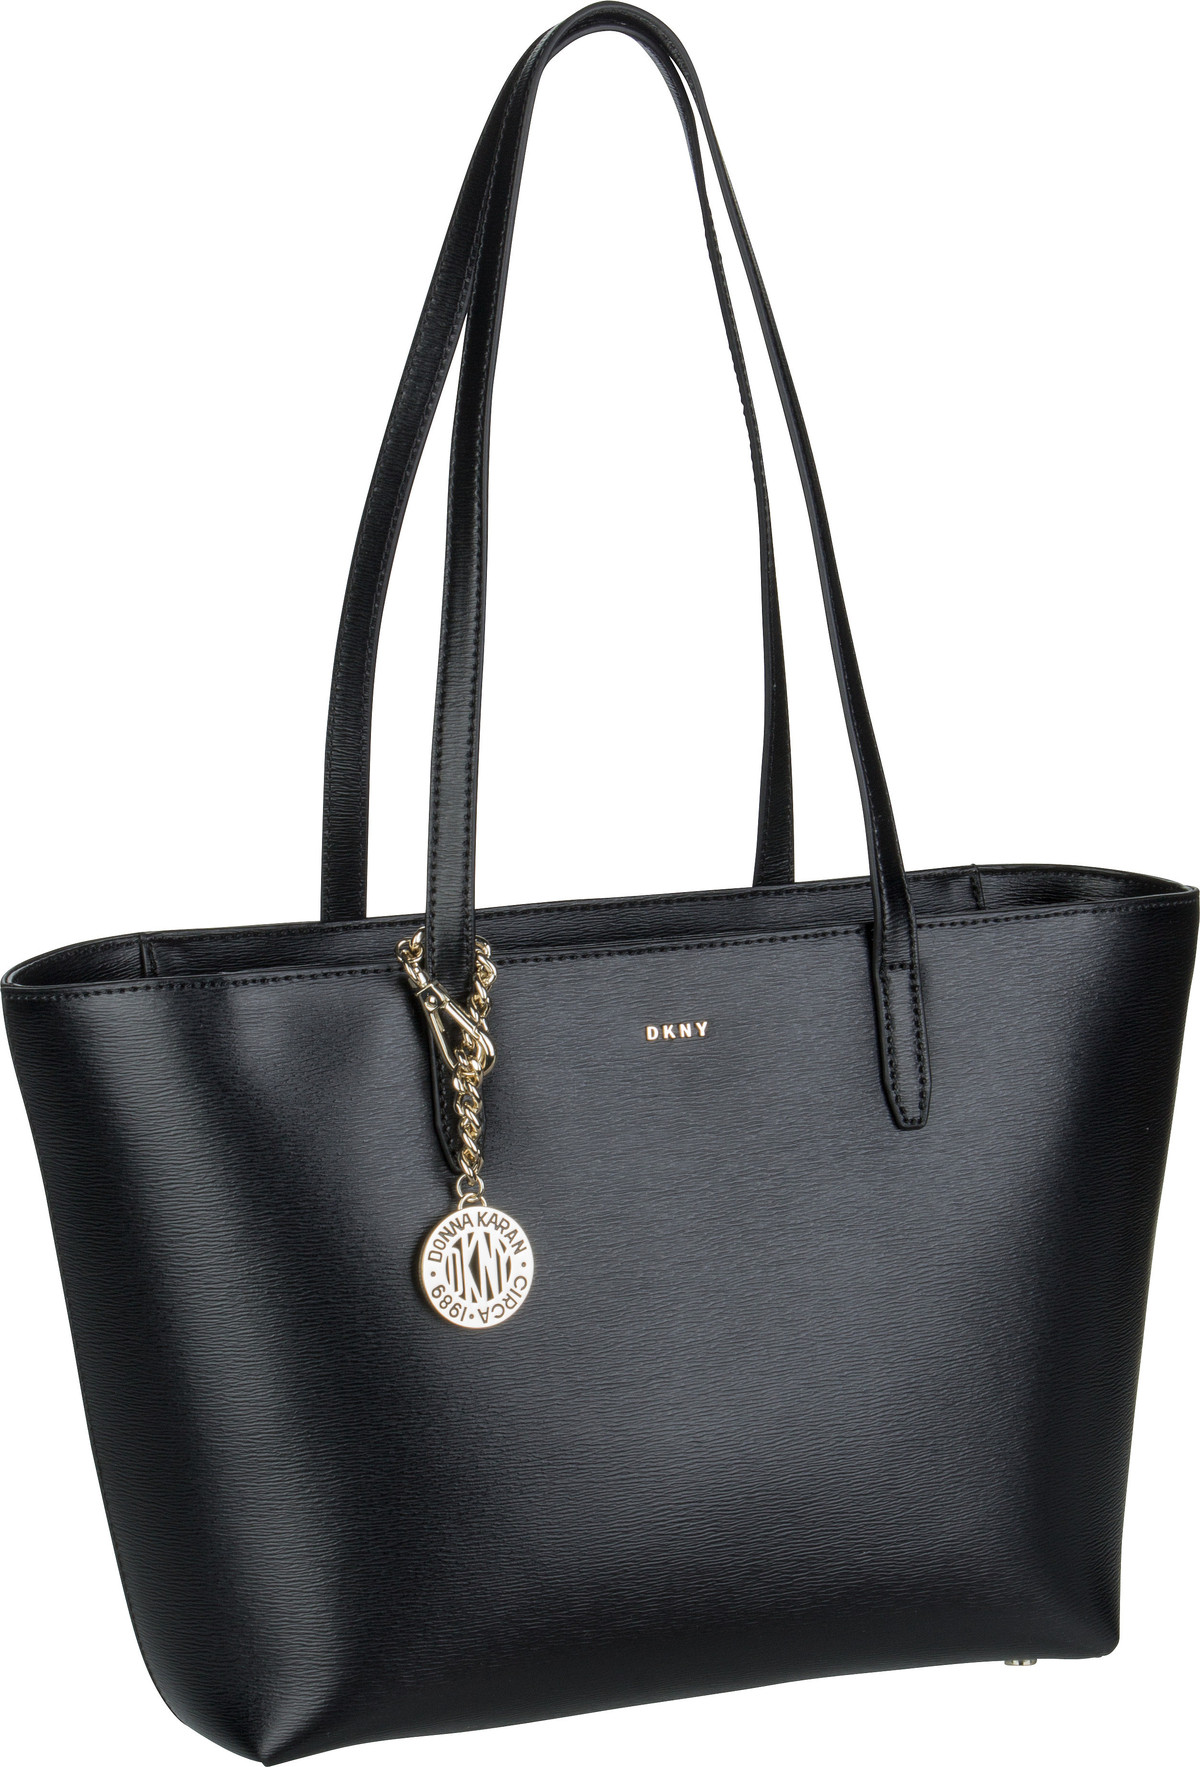 Shopper Bryant Sutton Medium Tote Black/Gold